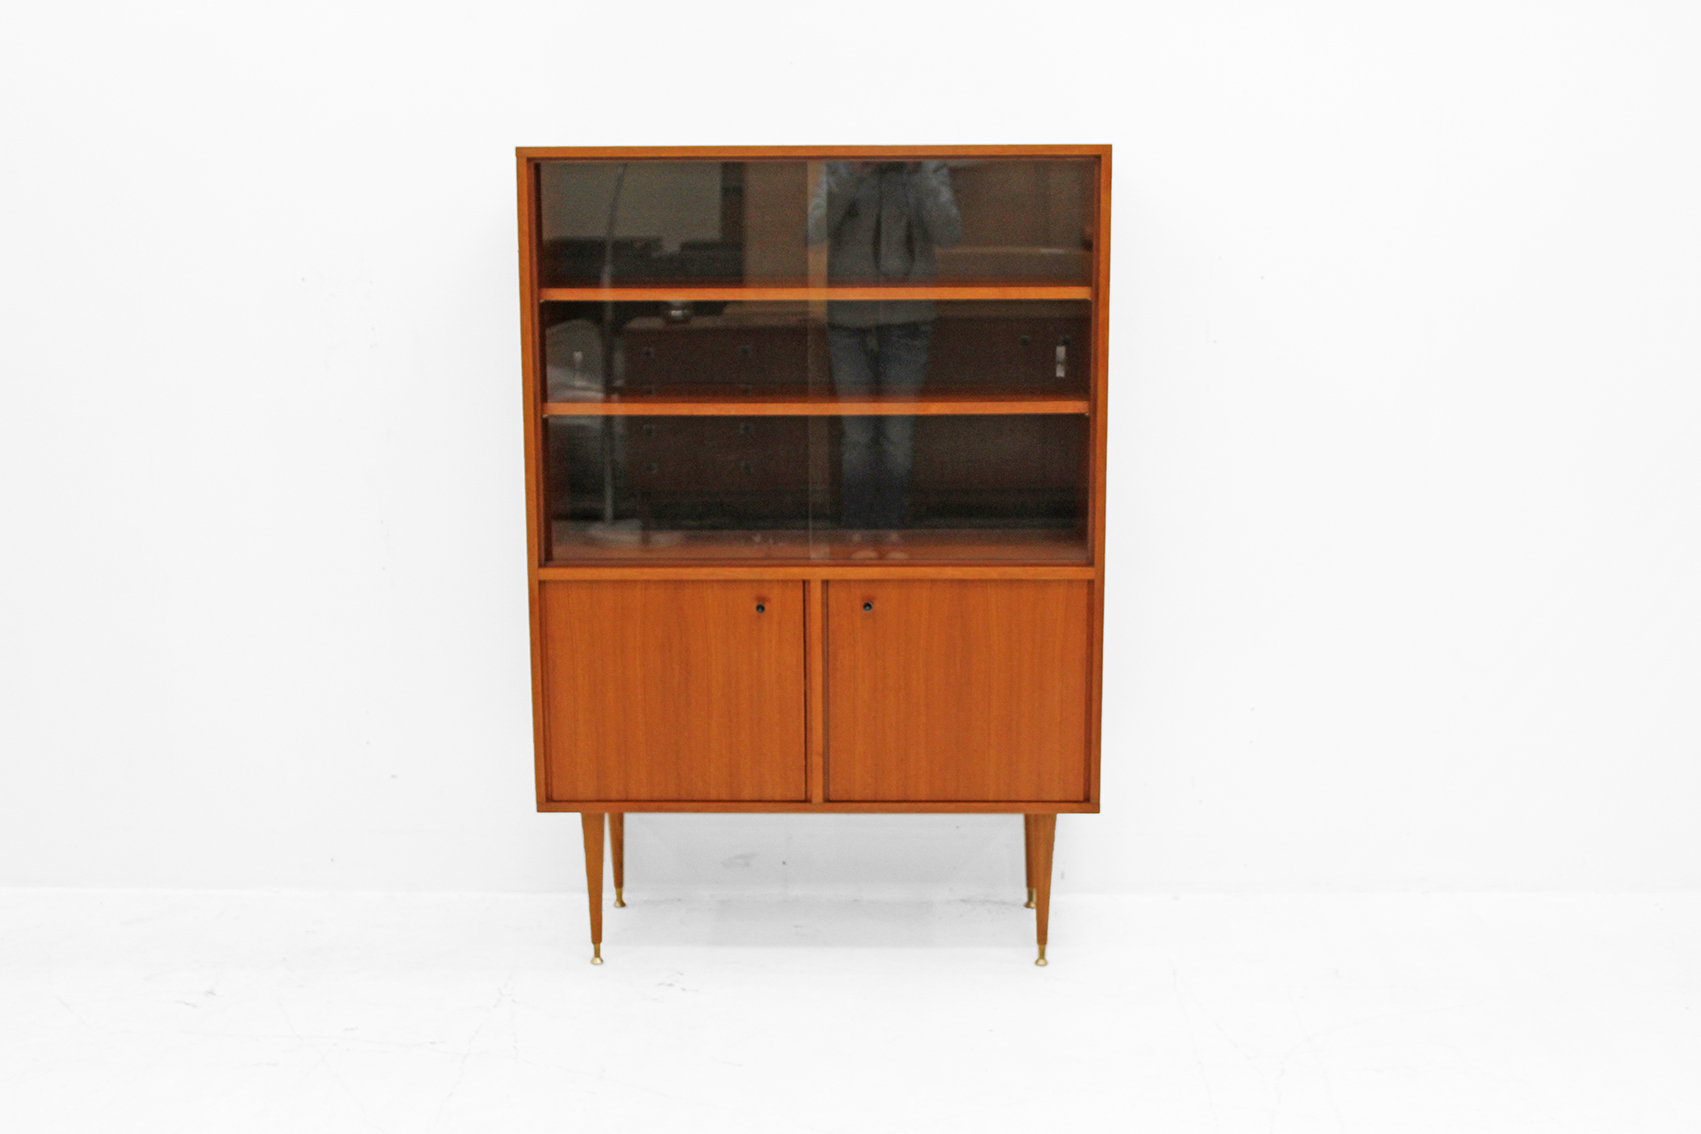 MDK showcabinet in teak